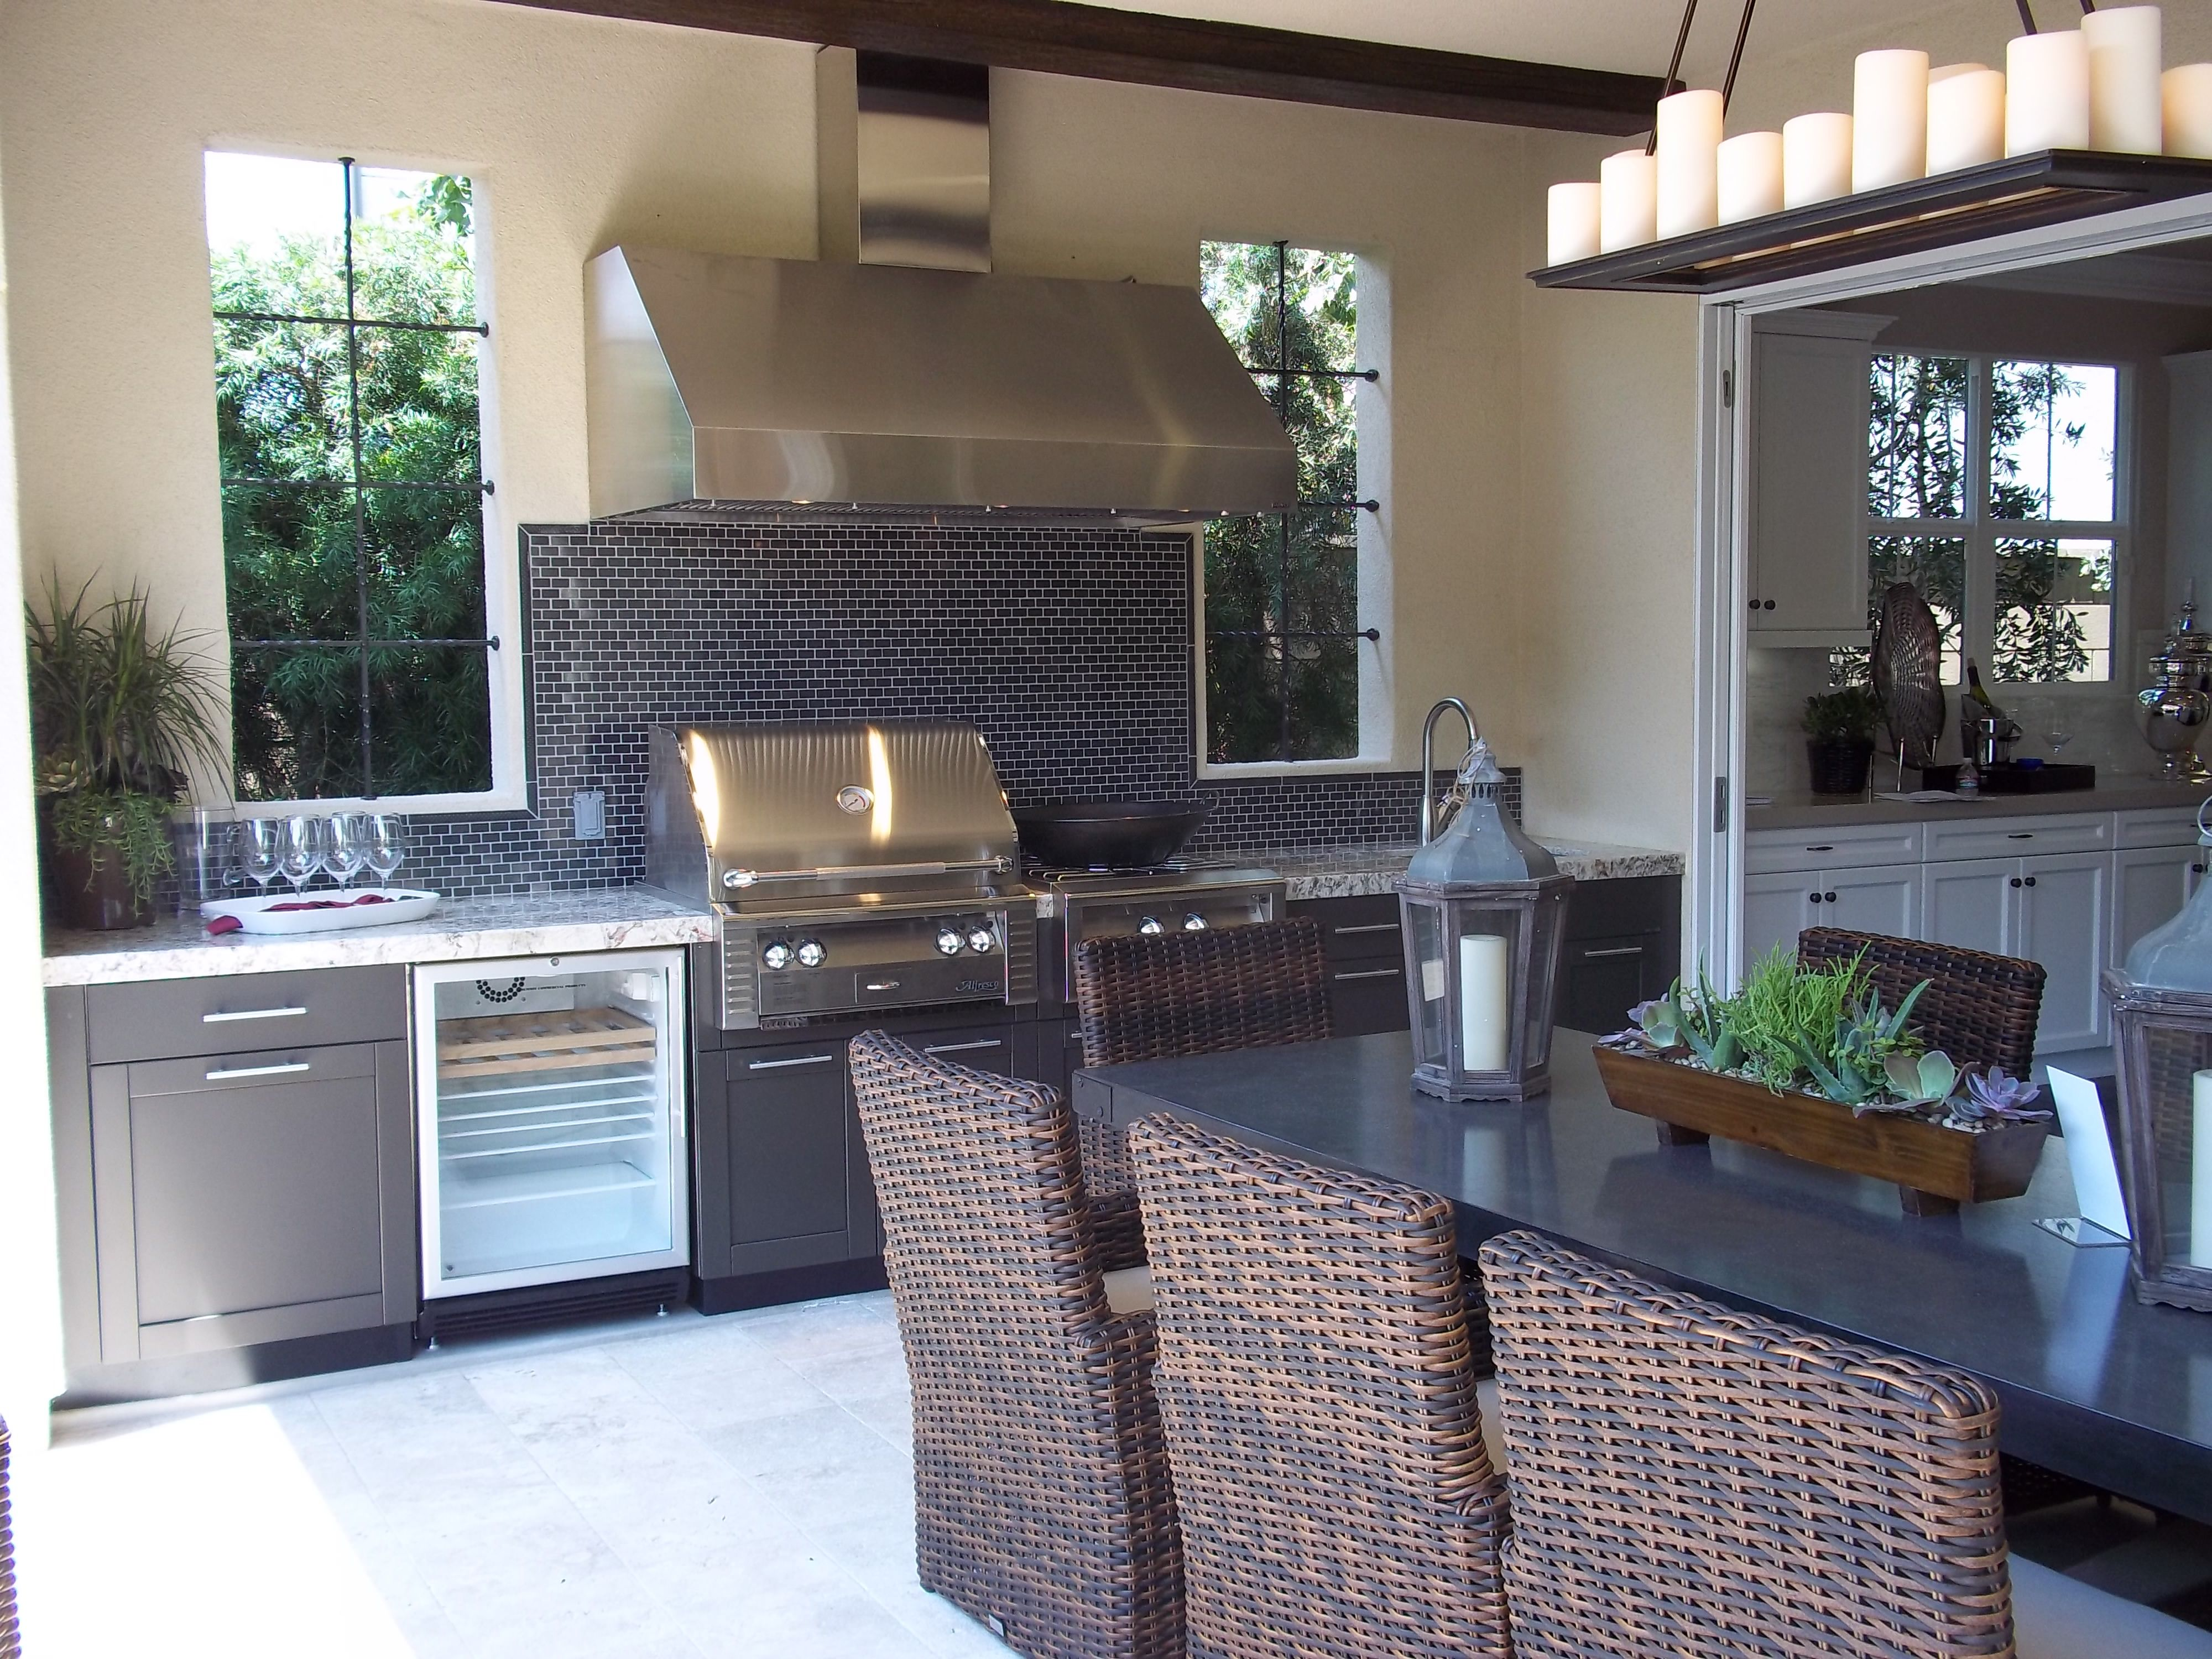 Danver Brookfield Grand Opening With Images Outdoor Kitchen Sink Outdoor Kitchen Design Outdoor Kitchen Cabinets